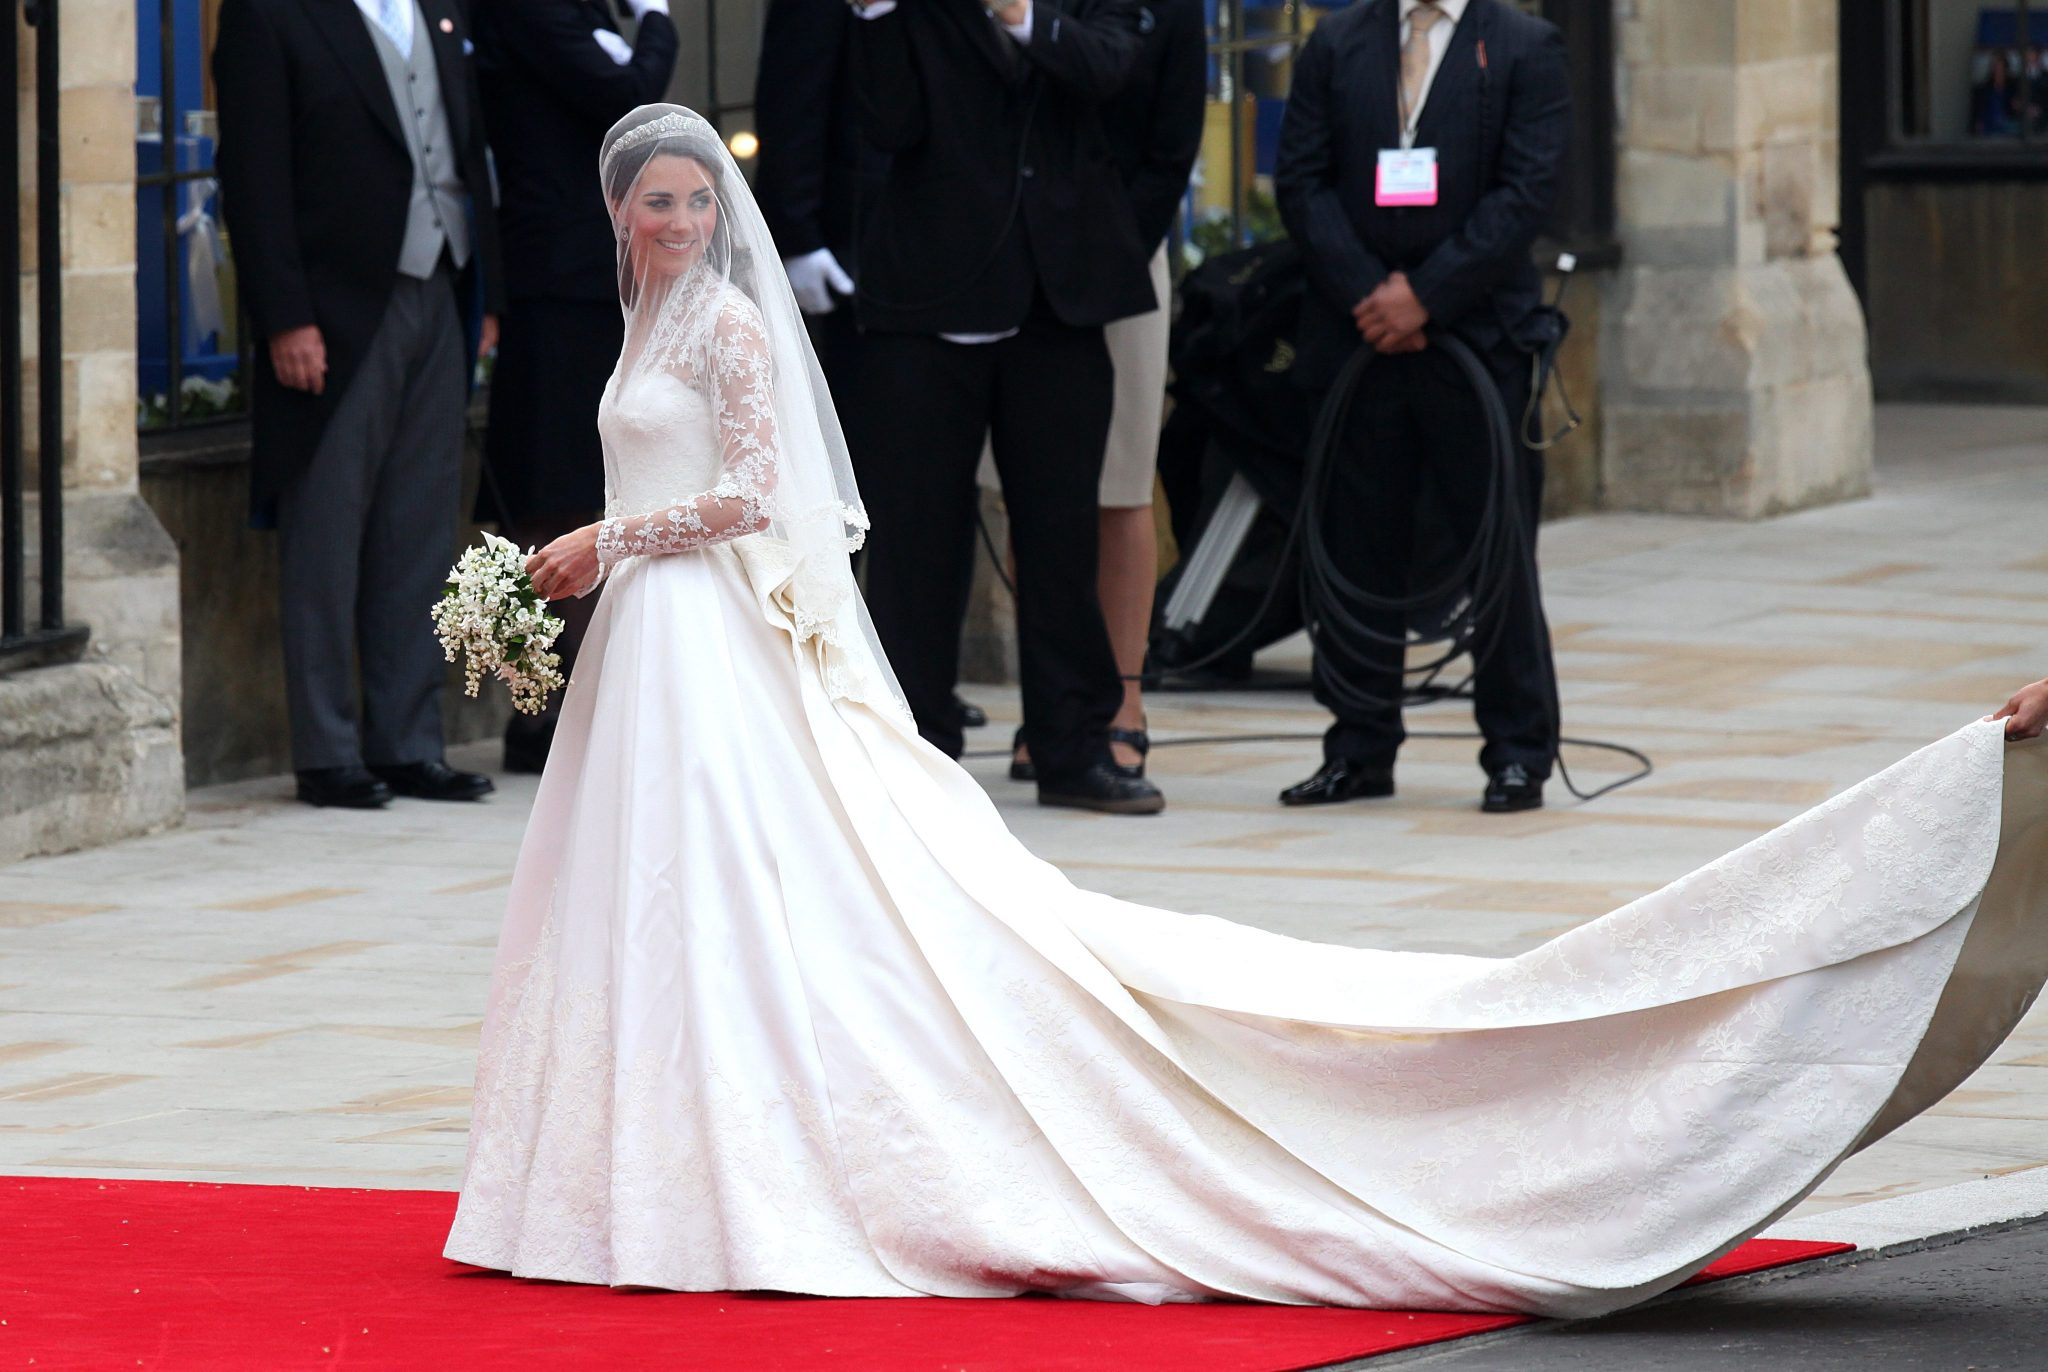 Princess catherine in sarah burton wedding dress for Princess catherine wedding dress